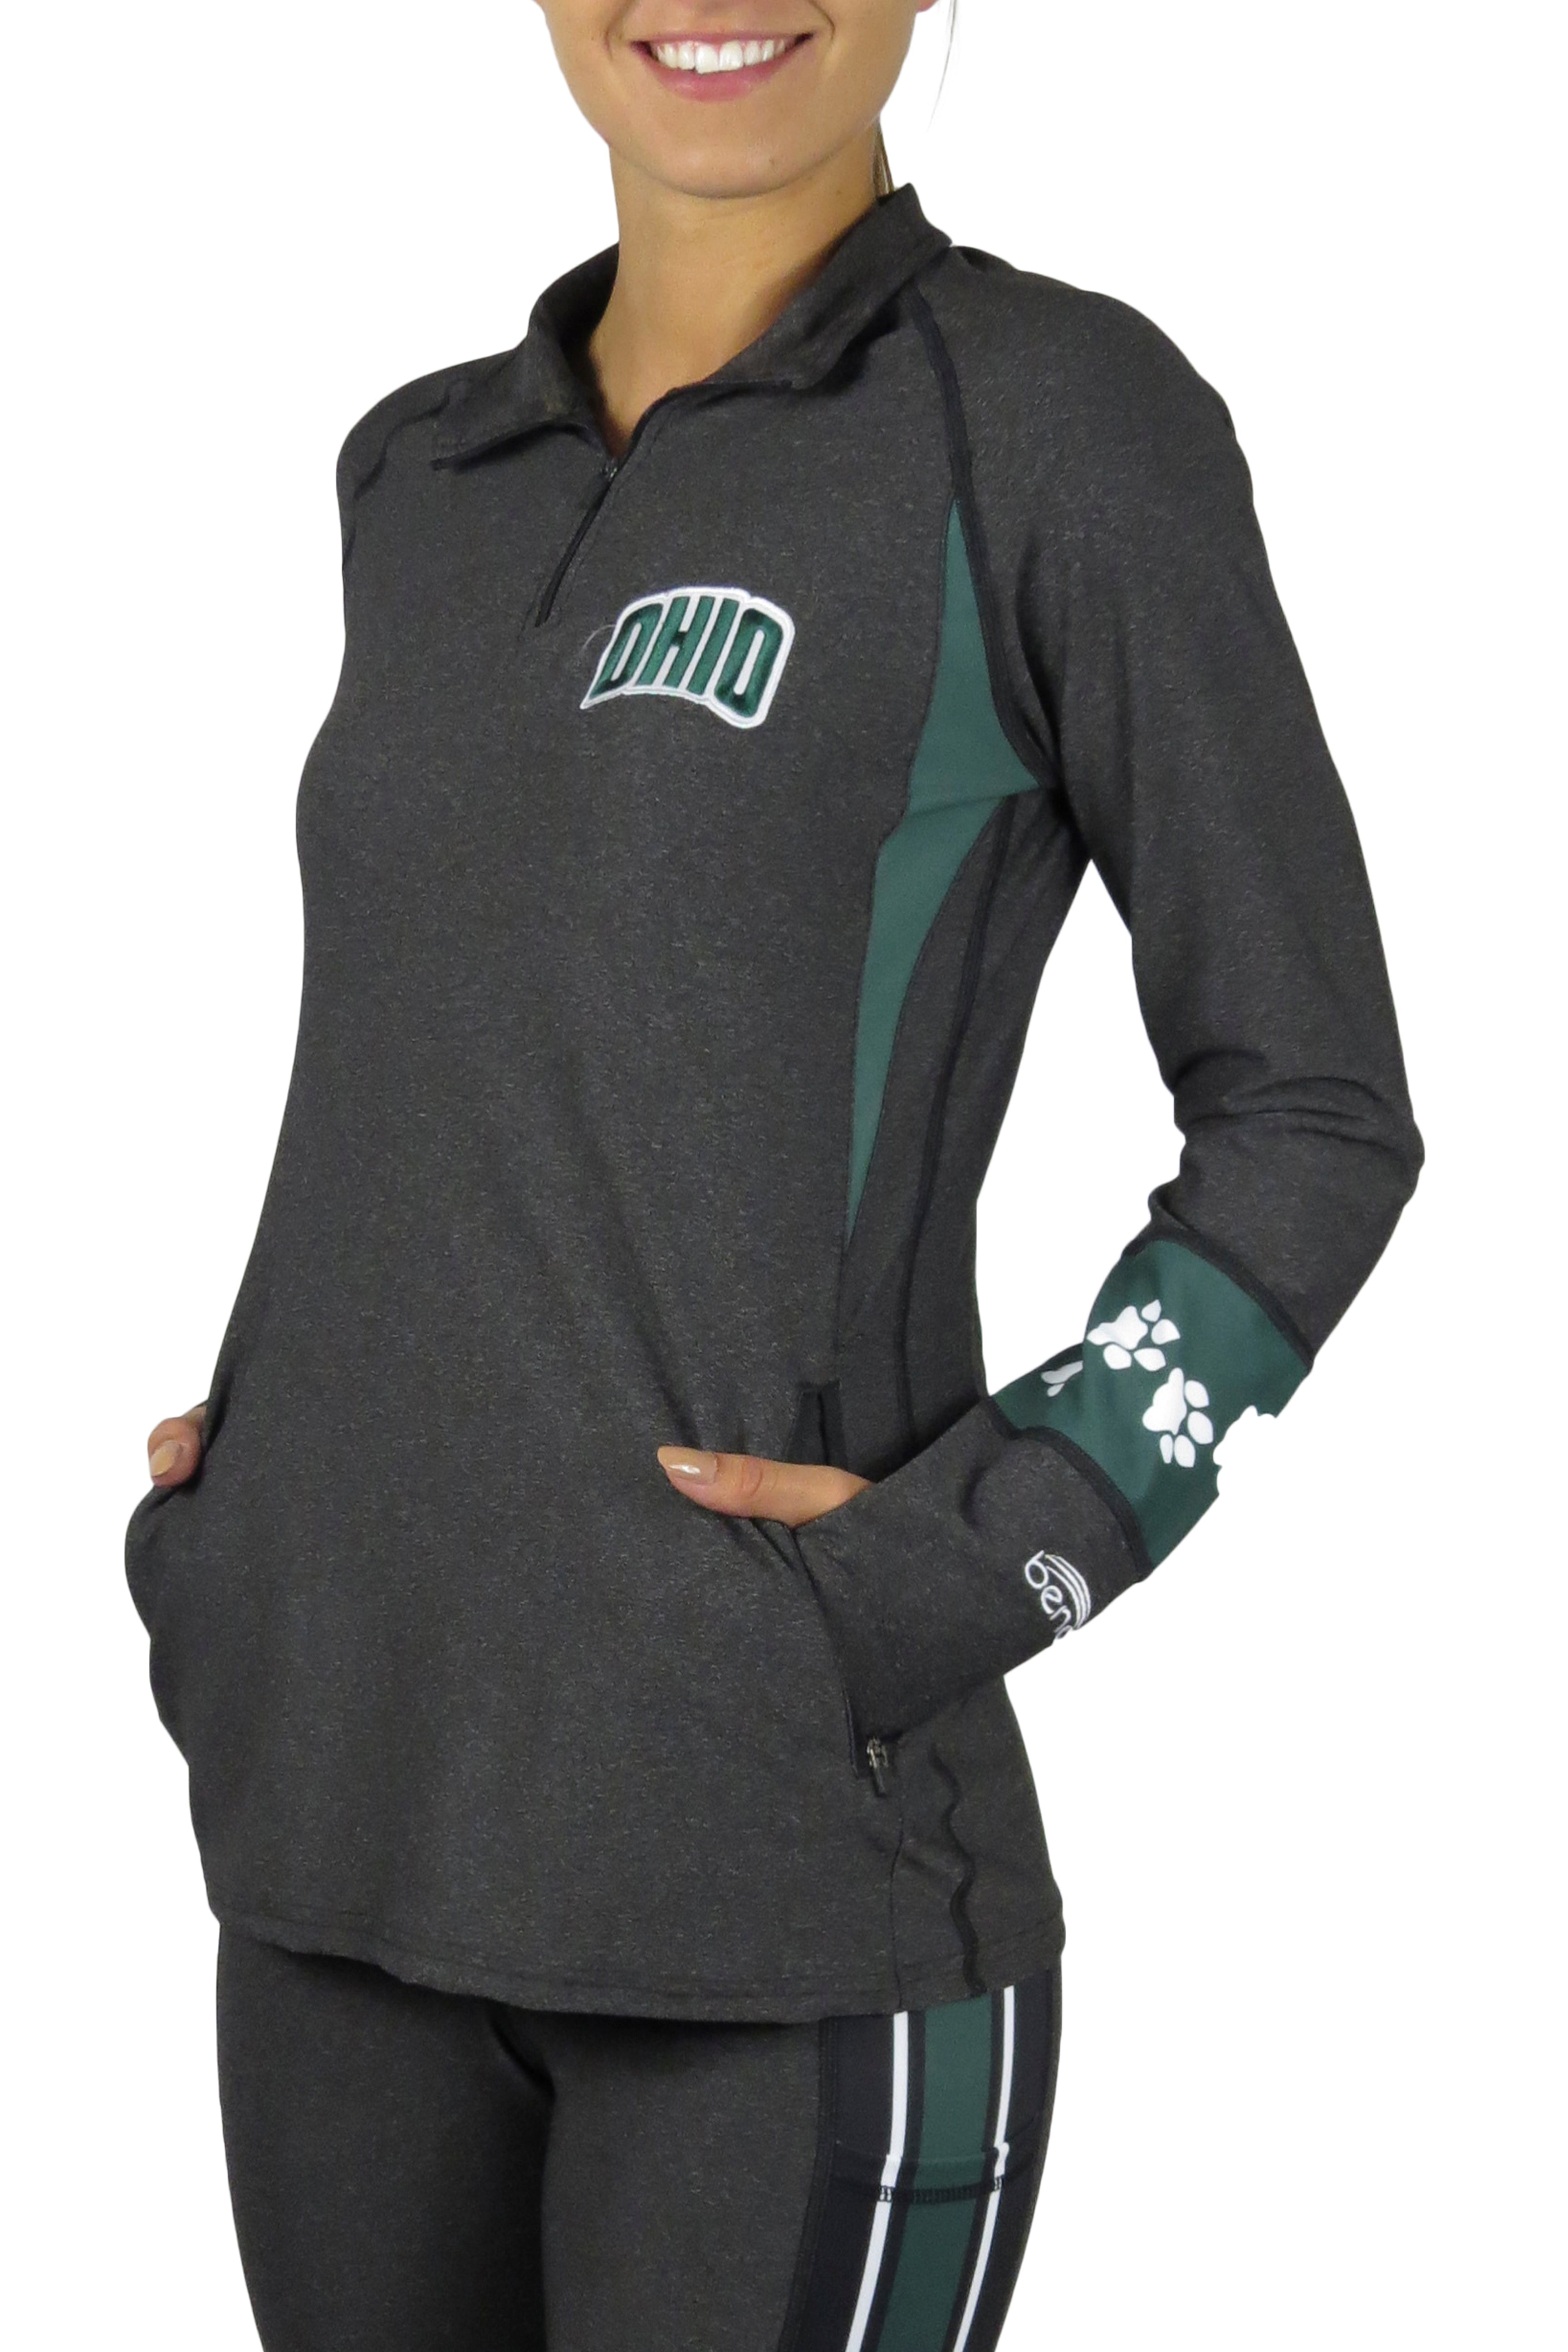 OHU-5026- The Ohio University 1/4 Zip Gameday Pullover/Onyx